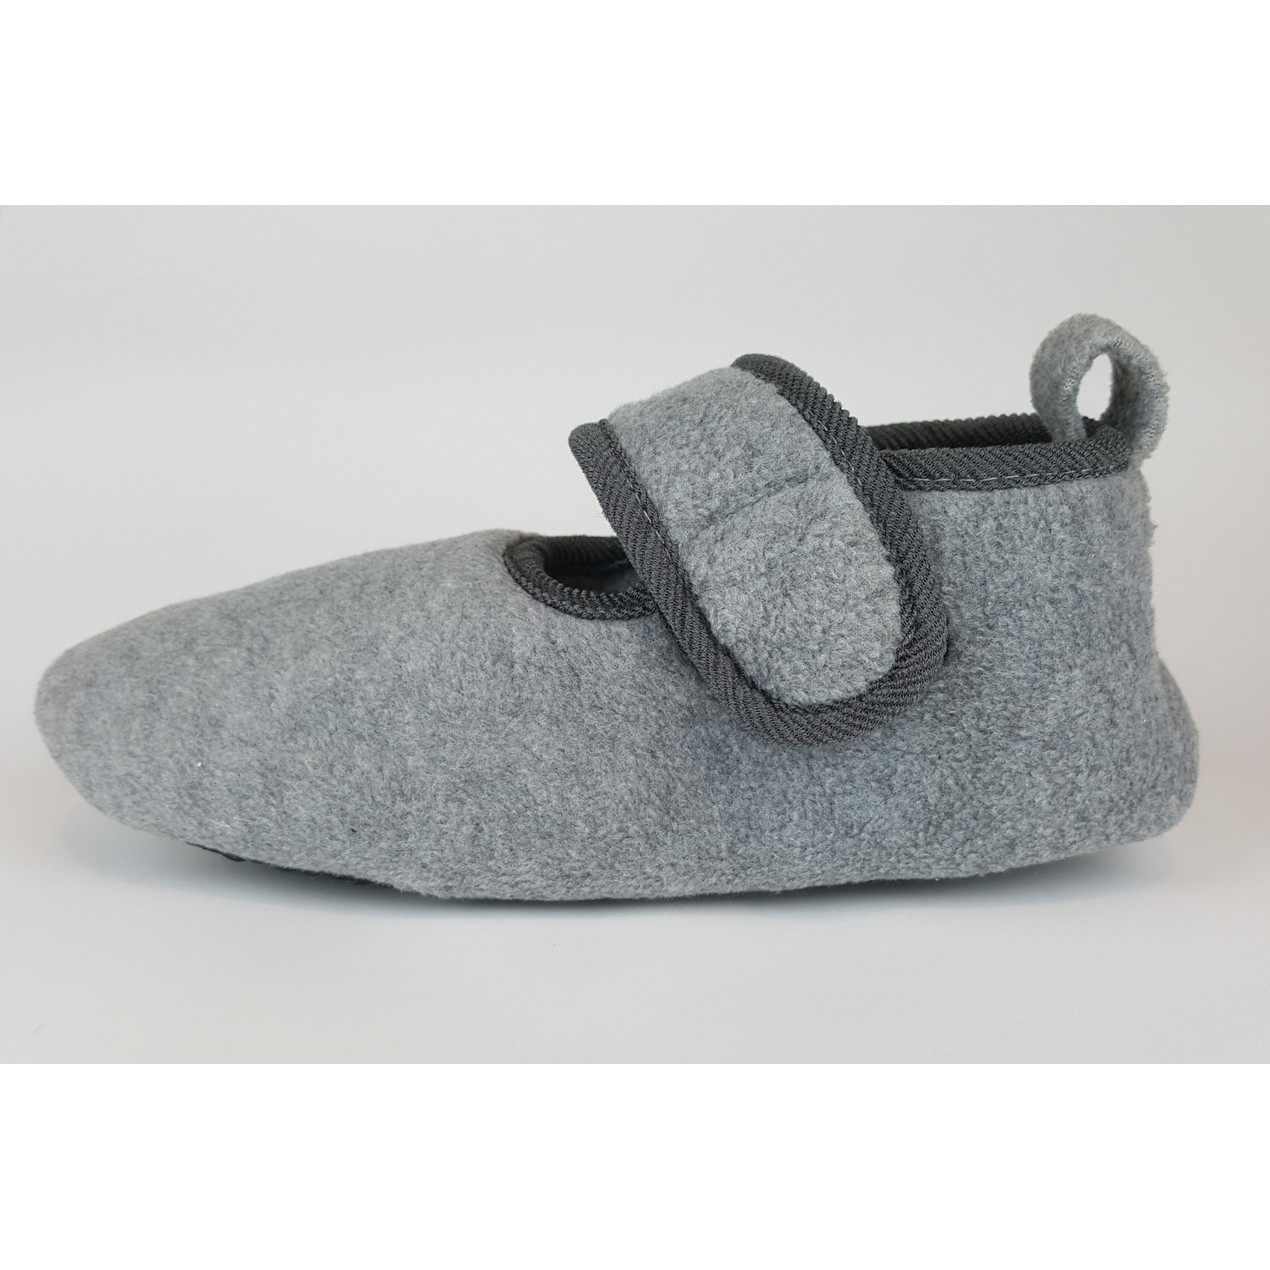 Snookiz Microwave Heated Slippers With Lavatech Technology